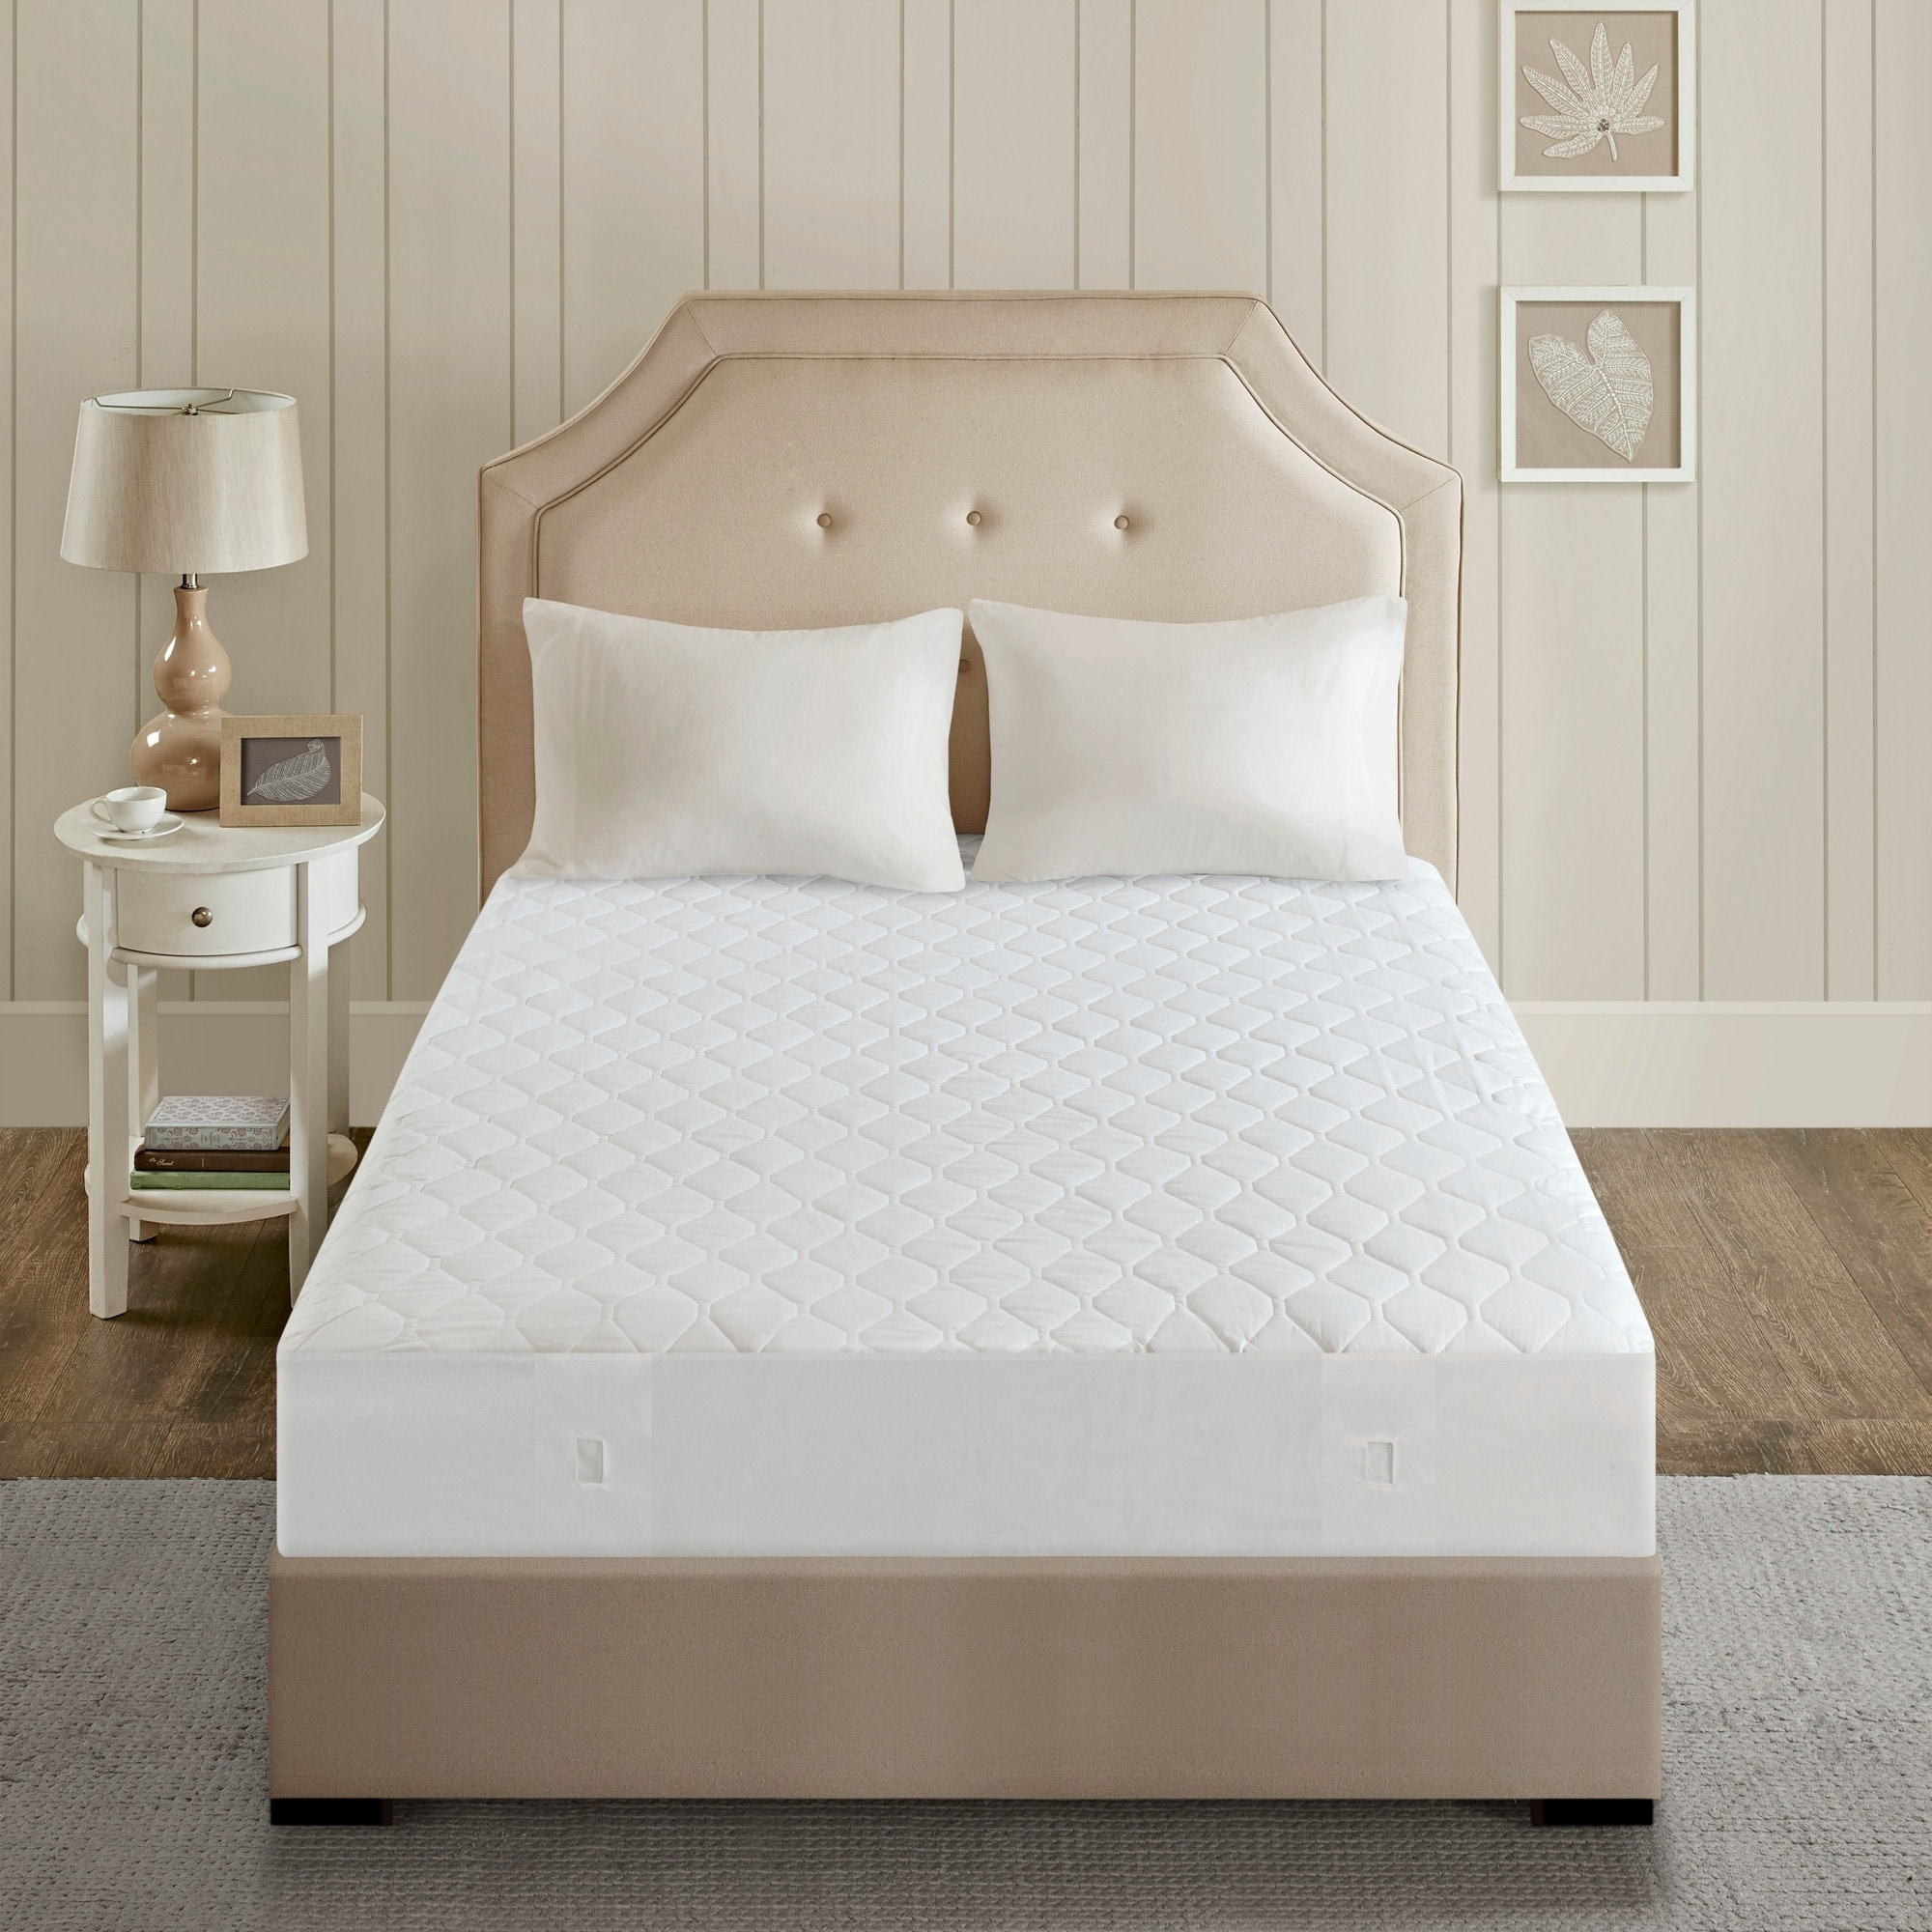 Beautyrest Twin-size Heated Electric Mattress Pad at Sears.com